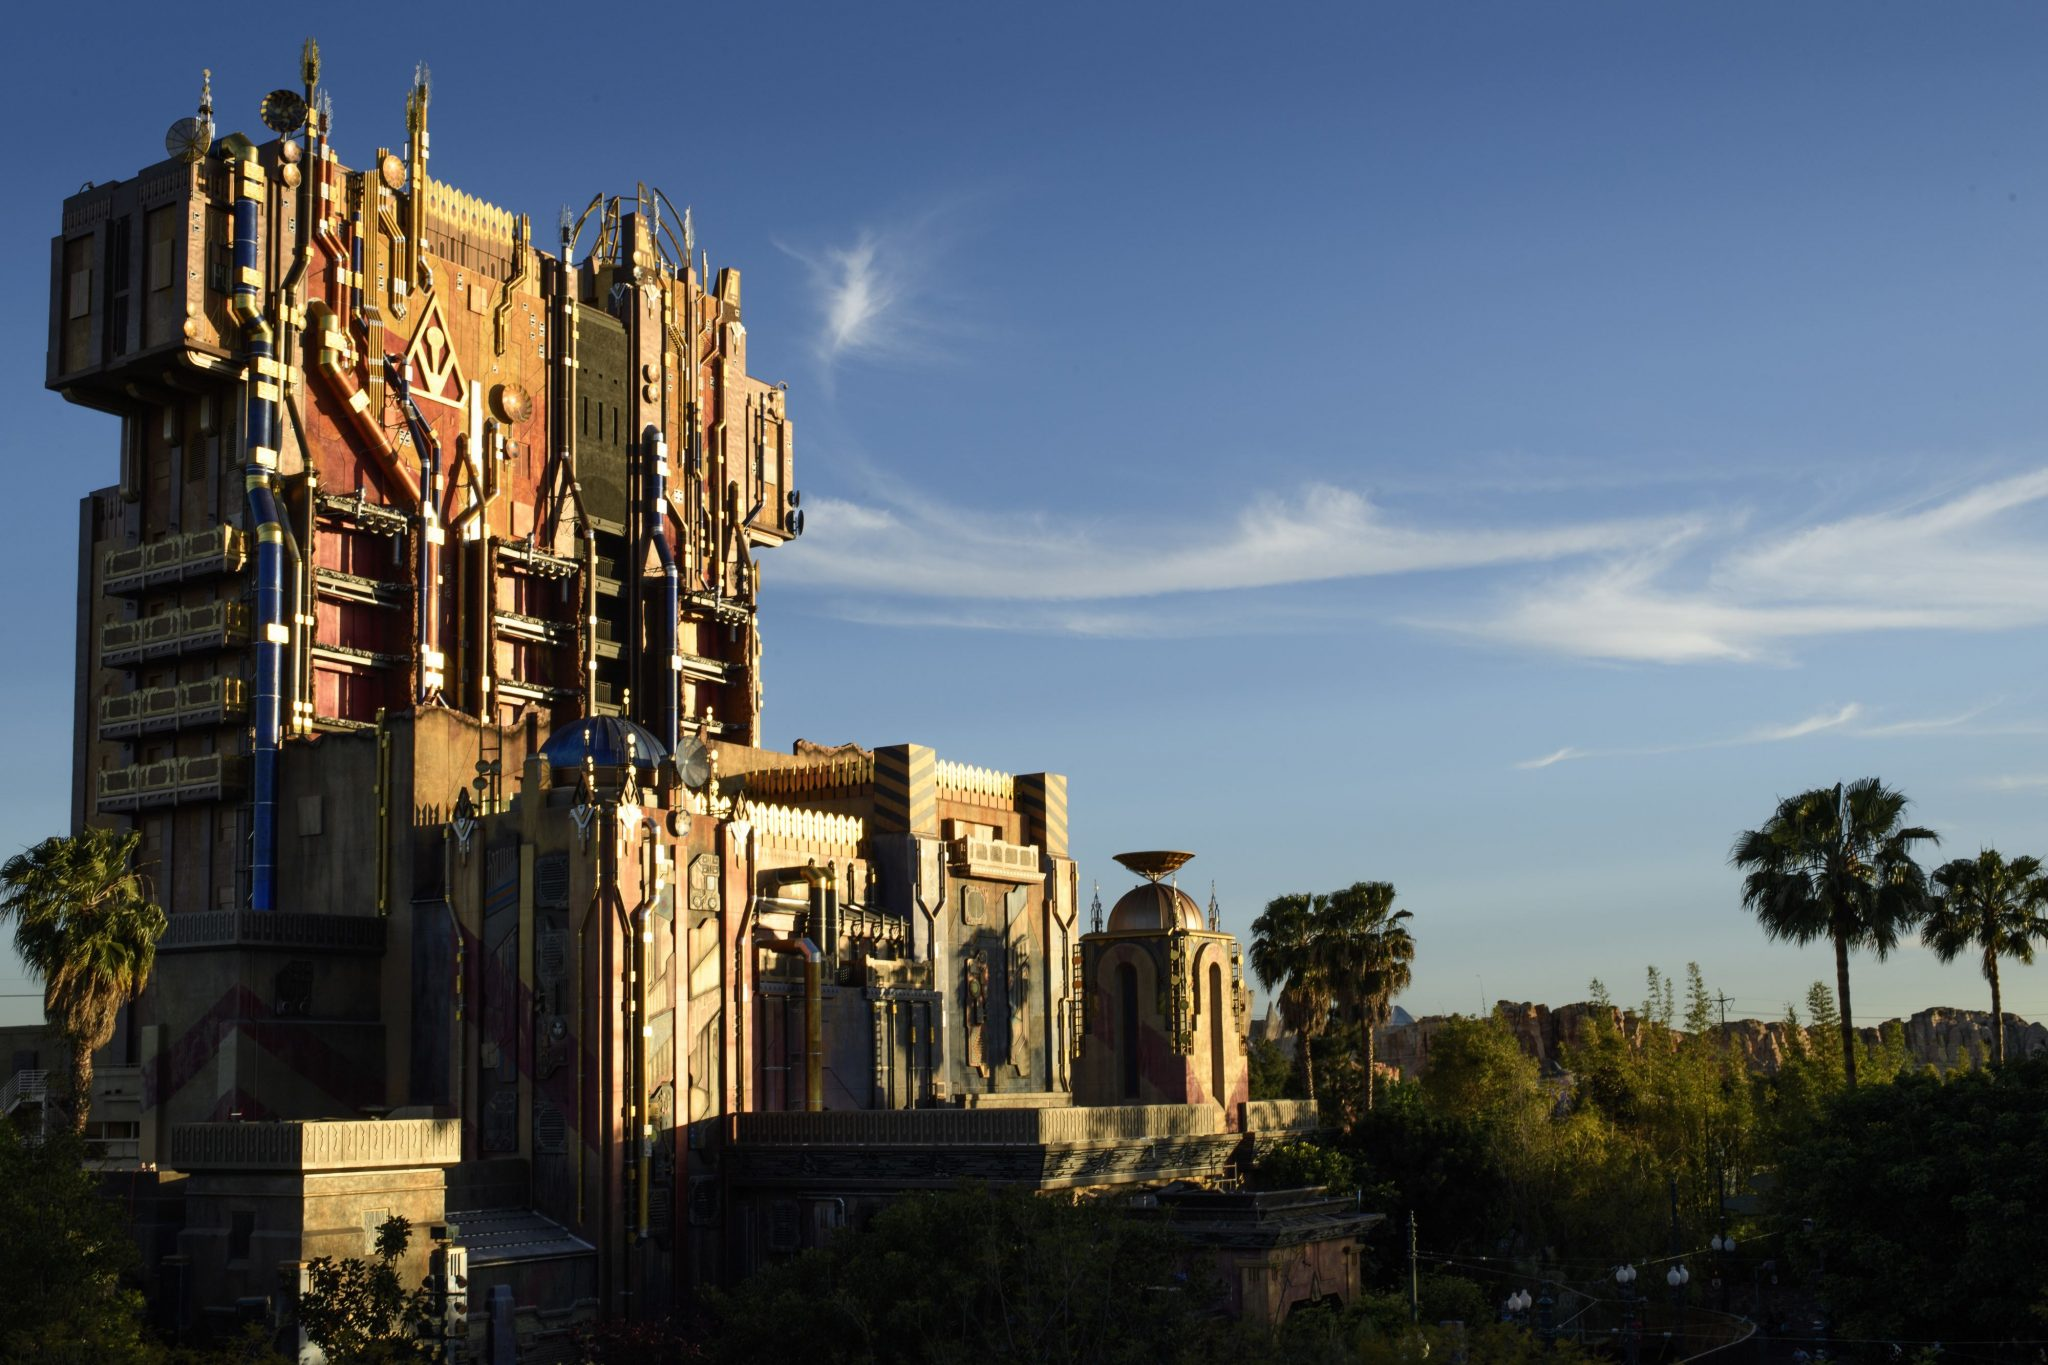 Guardians of the Galaxy - Mission: BREAKOUT!